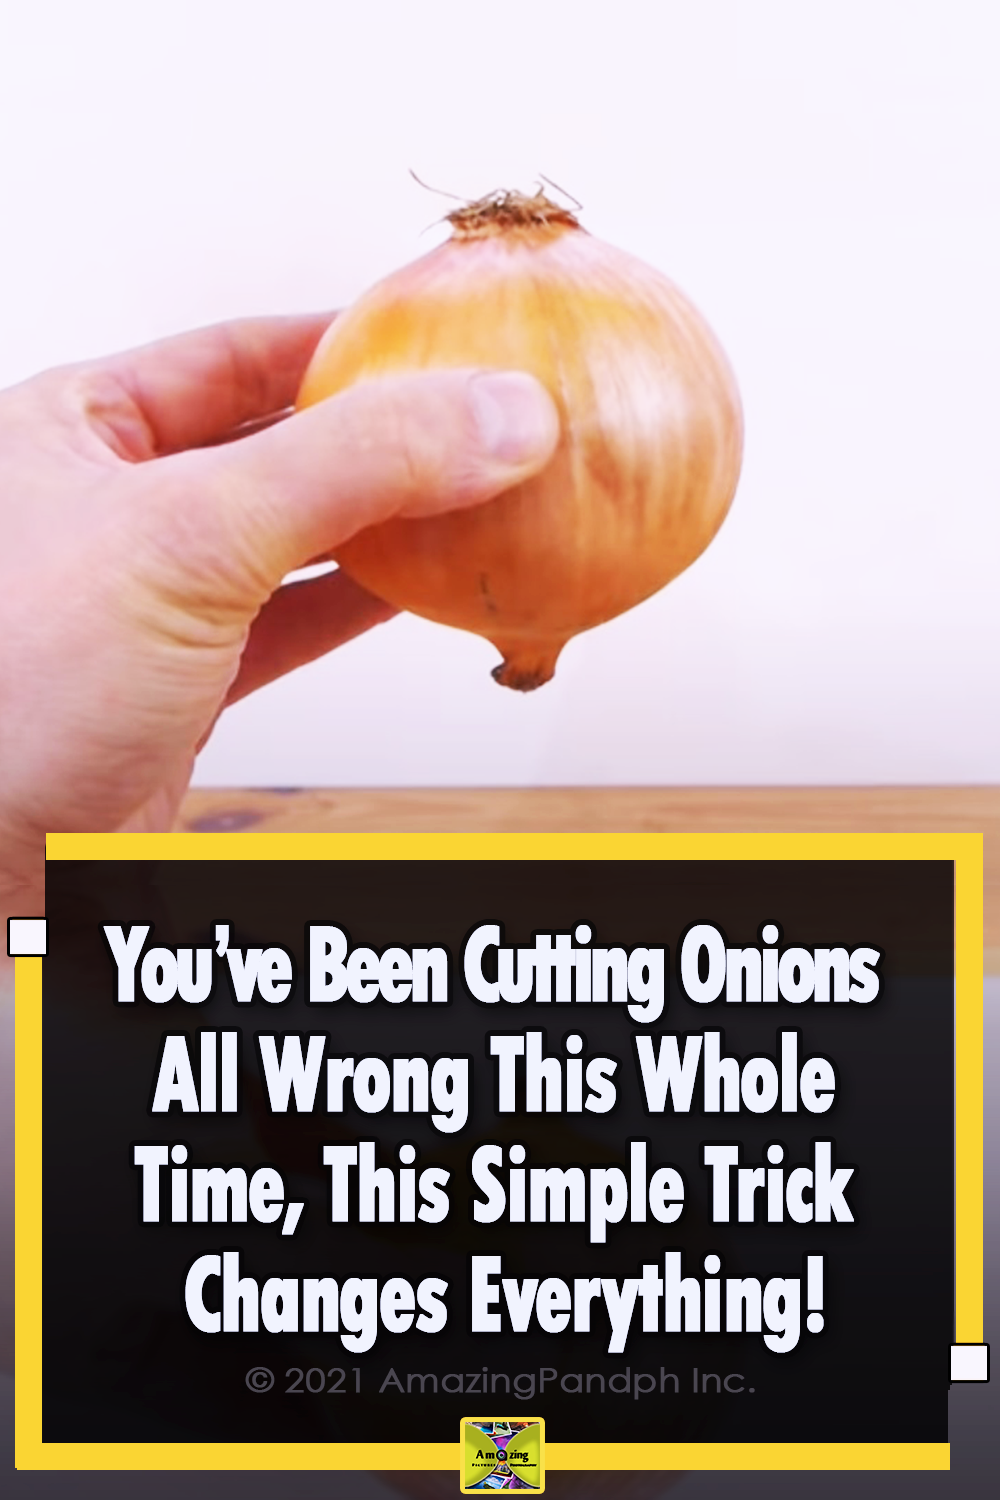 Hacks, life hacks, tricks, idea, cooking, kitchen, how to cut, creative,